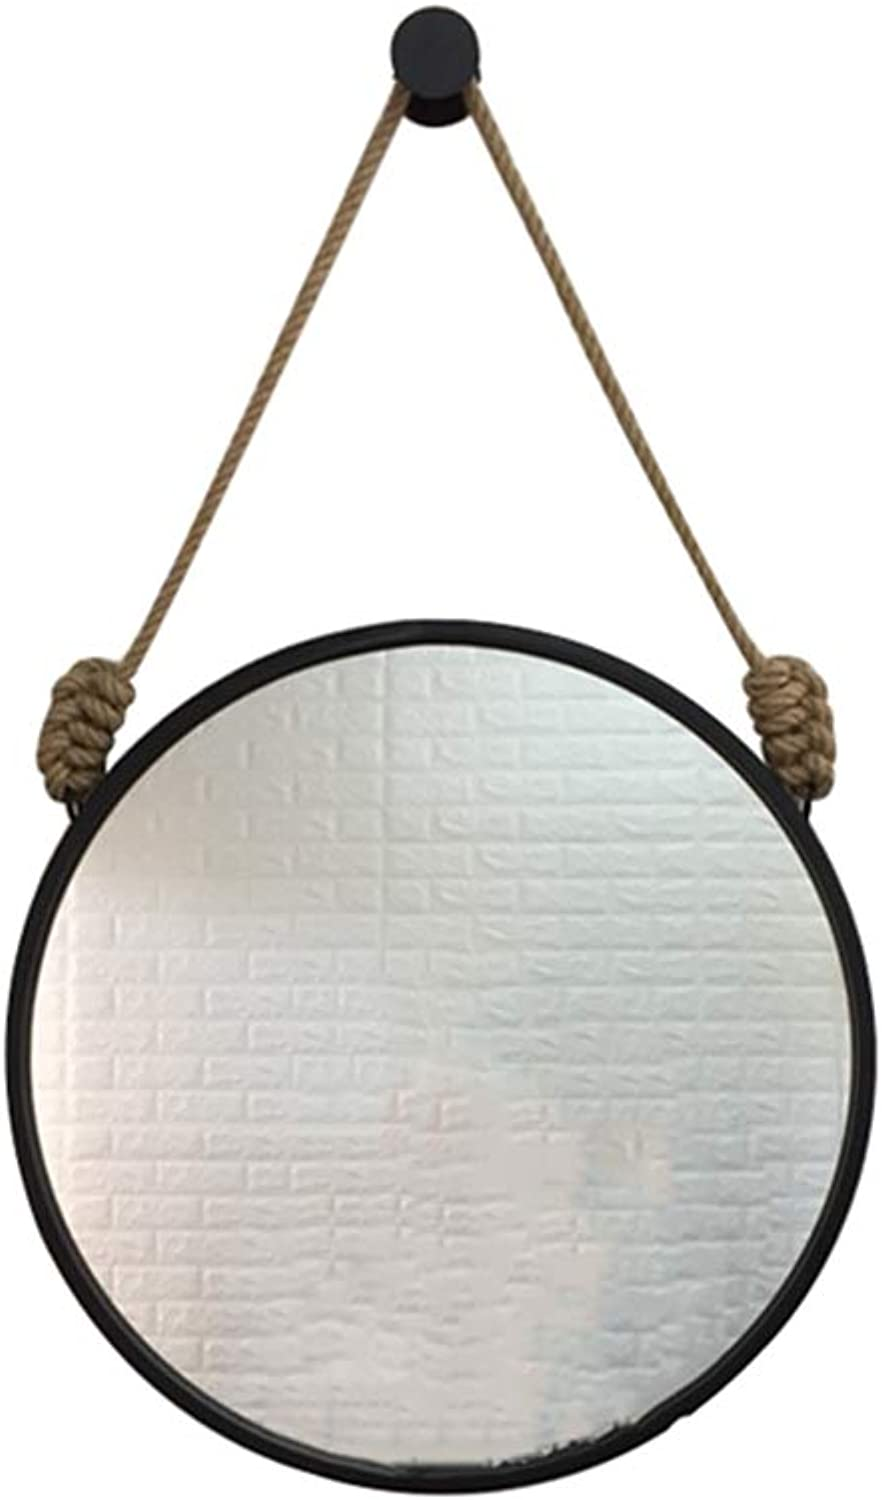 Wall-Mounted Mirror Round Diameter 30 40 50 60 70cm Metal Frame Hemp Hanging Mirror Bathroom Toilet Living Room Bedroom Nordic Fashion Decoration Black